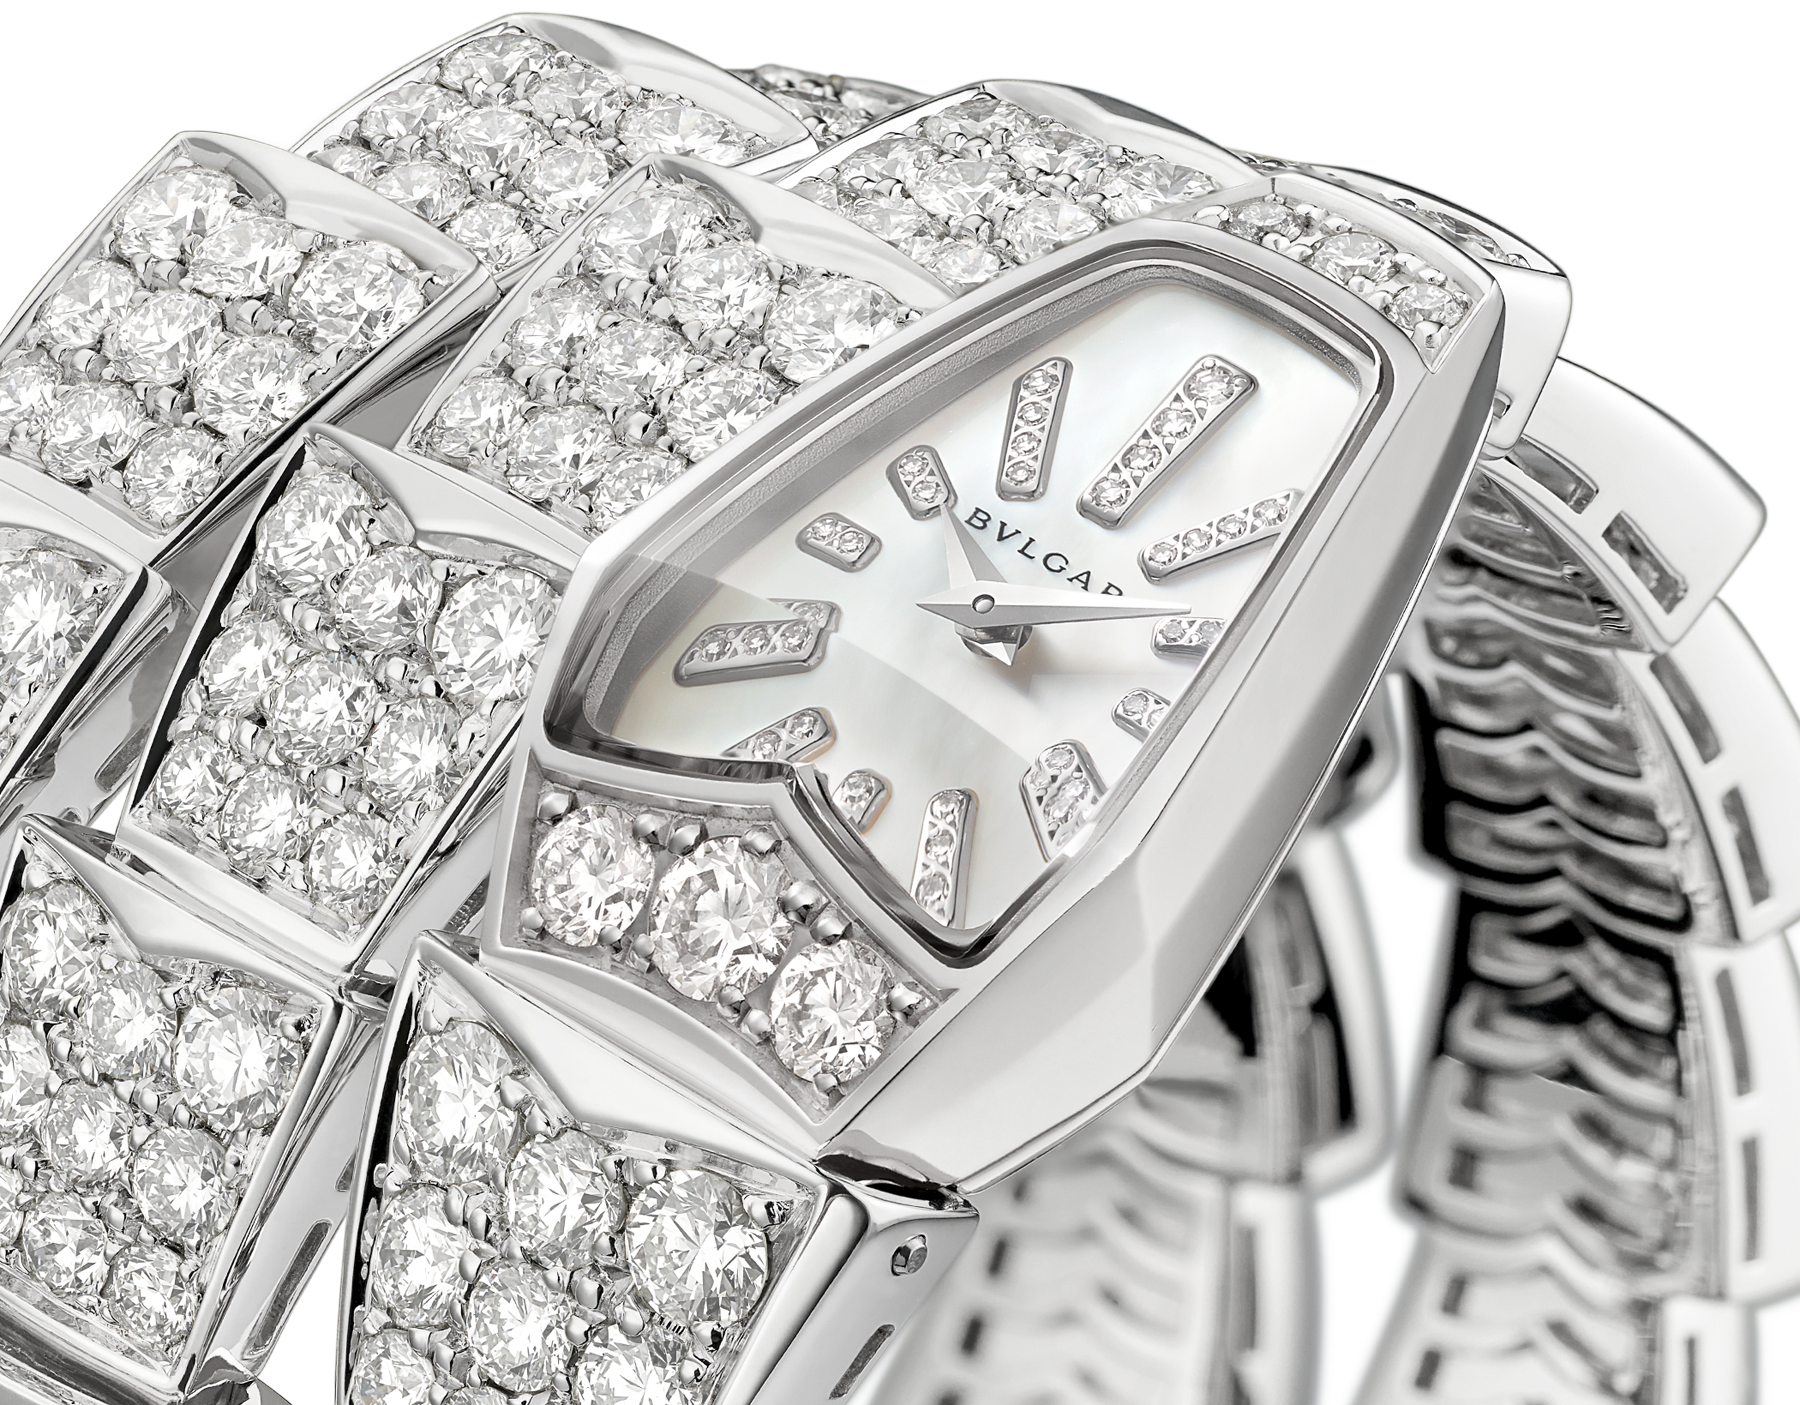 Serpenti Jewellery Watch in 18 kt white gold case and double spiral bracelet, both set with brilliant cut diamonds, white mother-of-pearl dial and diamond indexes. 101786 image 2